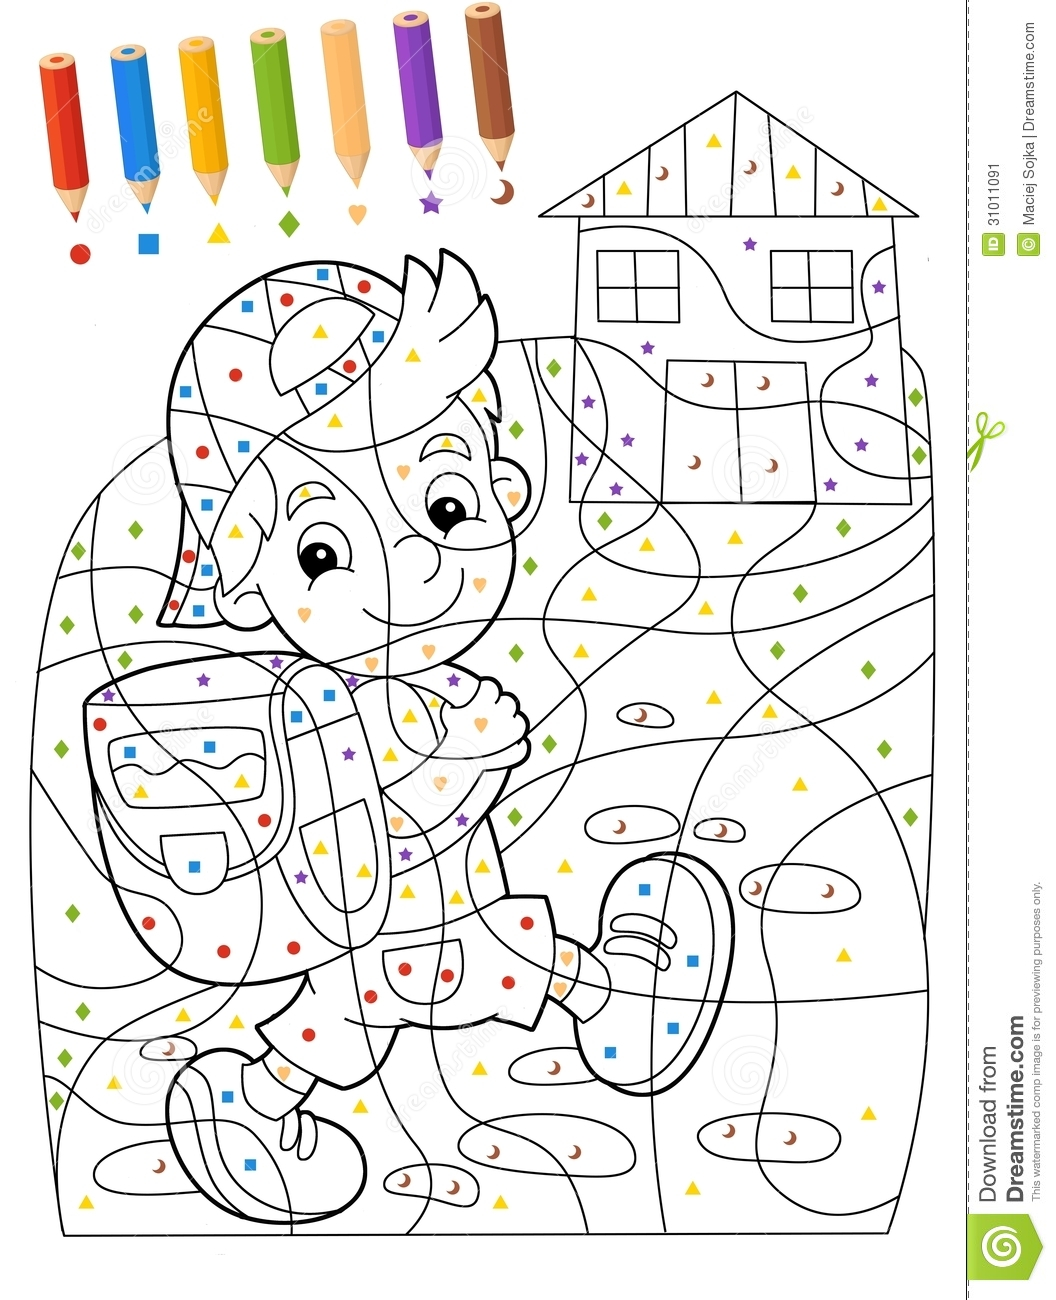 The Page With Exercises For Kids - Coloring Book - Illustration For ...